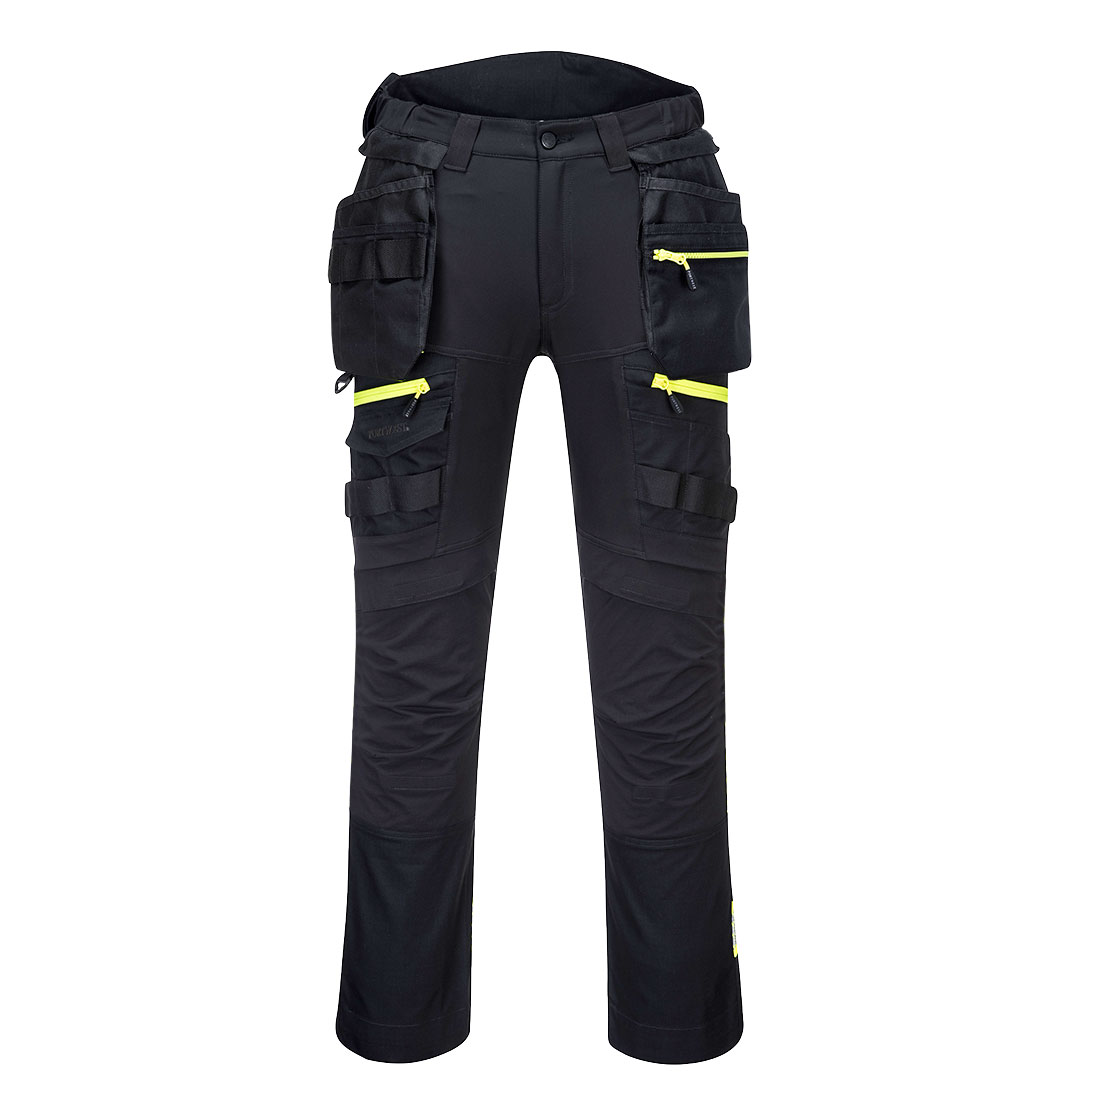 DX4 Holster Trousers Black 33R